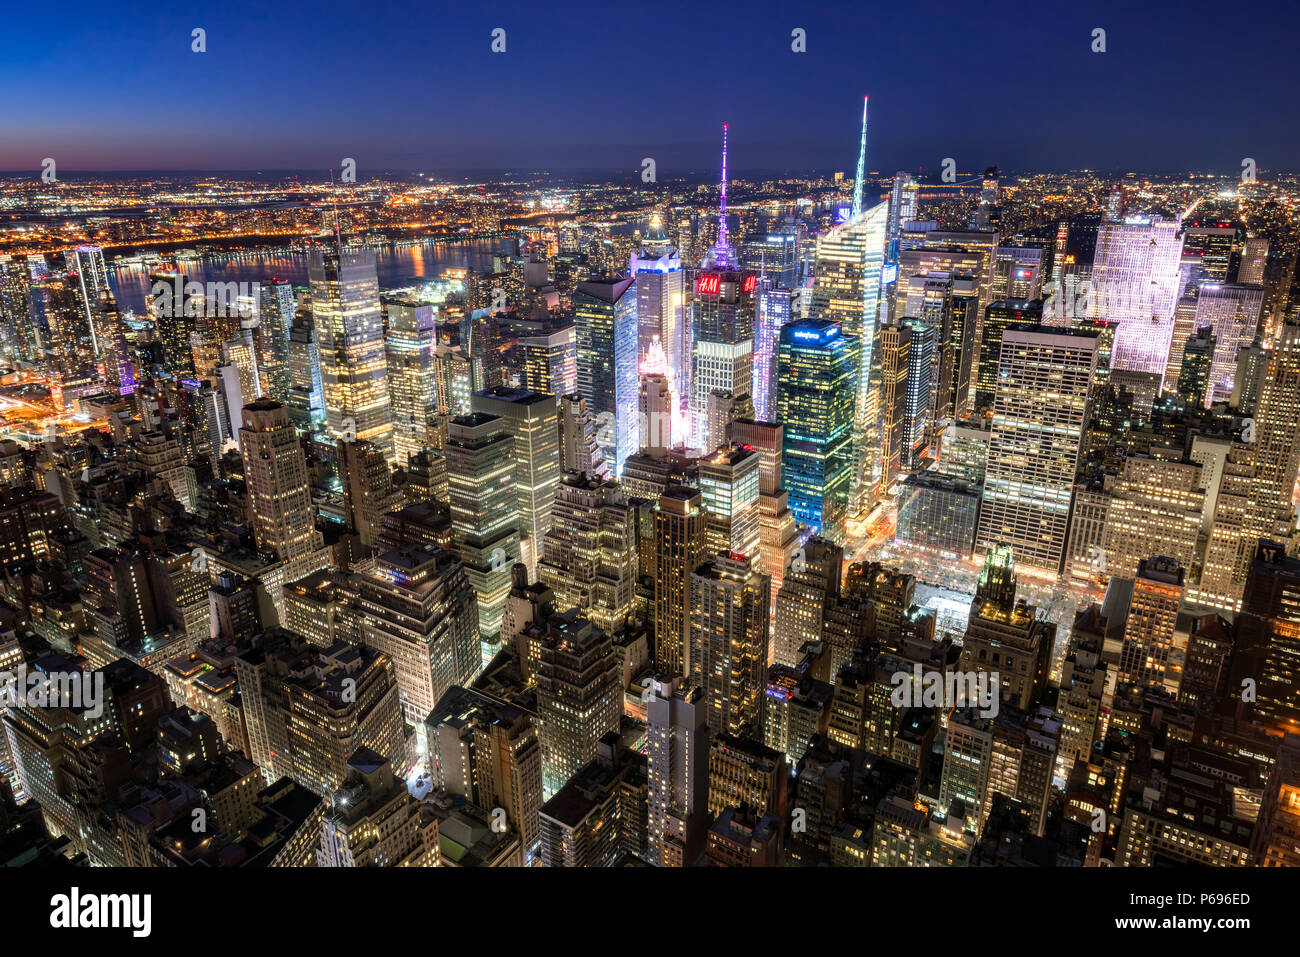 New York City, NY, USA - Mach 11, 2018: Midtown Manhattan skyscrapers illuminated at night (Times Square) - Stock Image